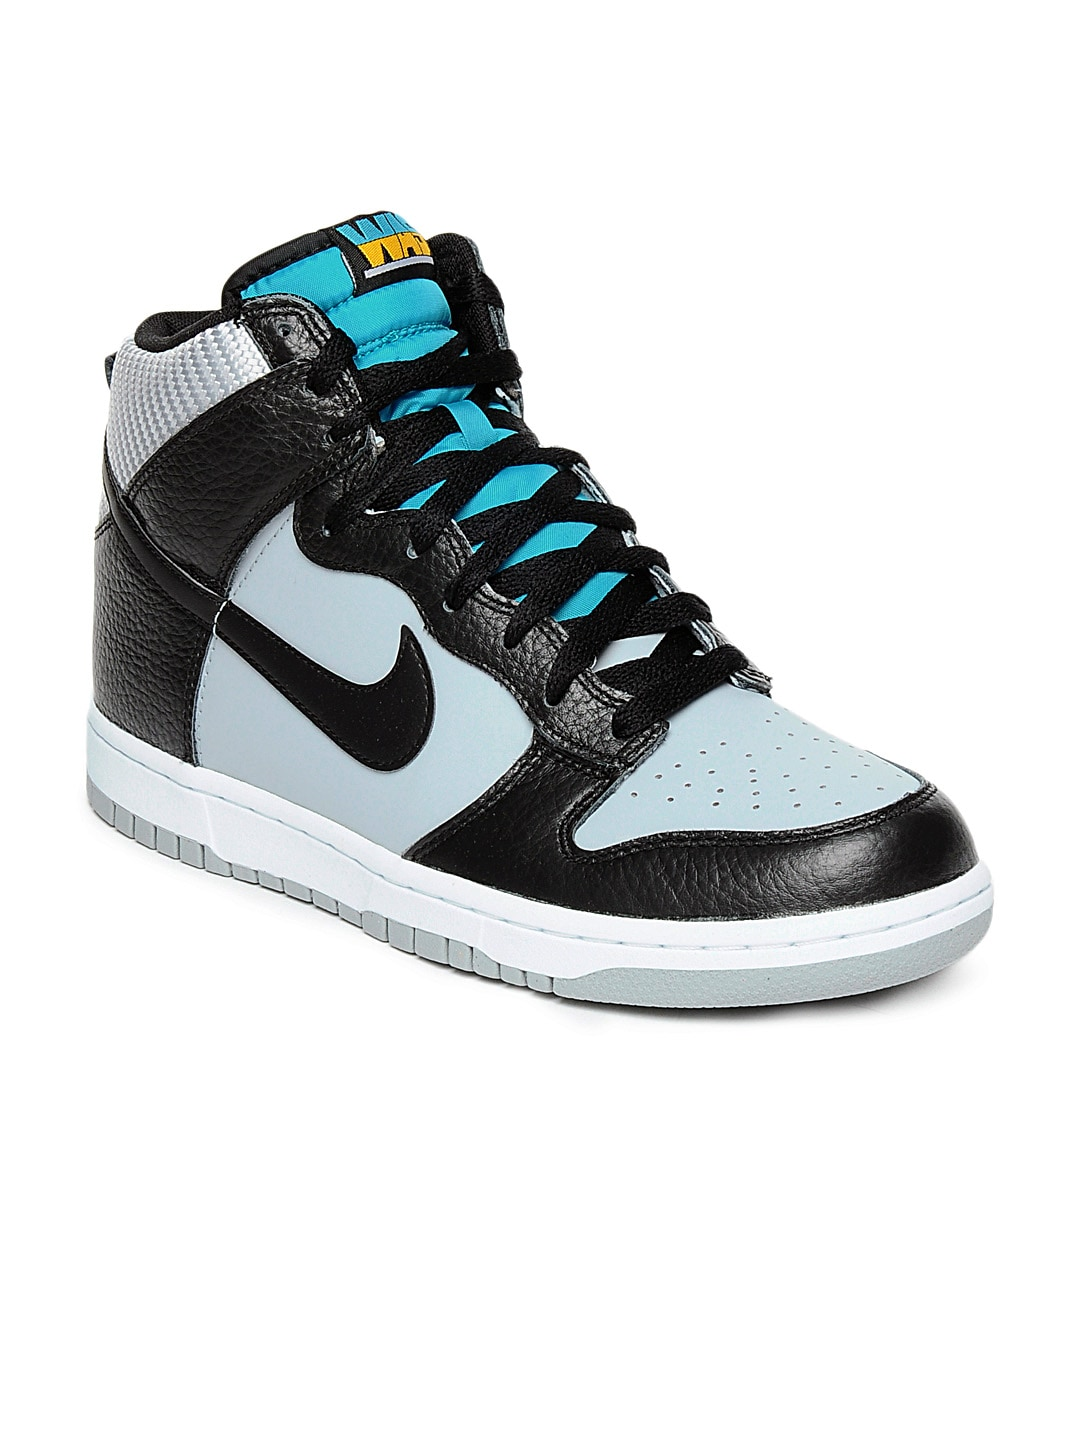 Online shopping for nike shoes in india